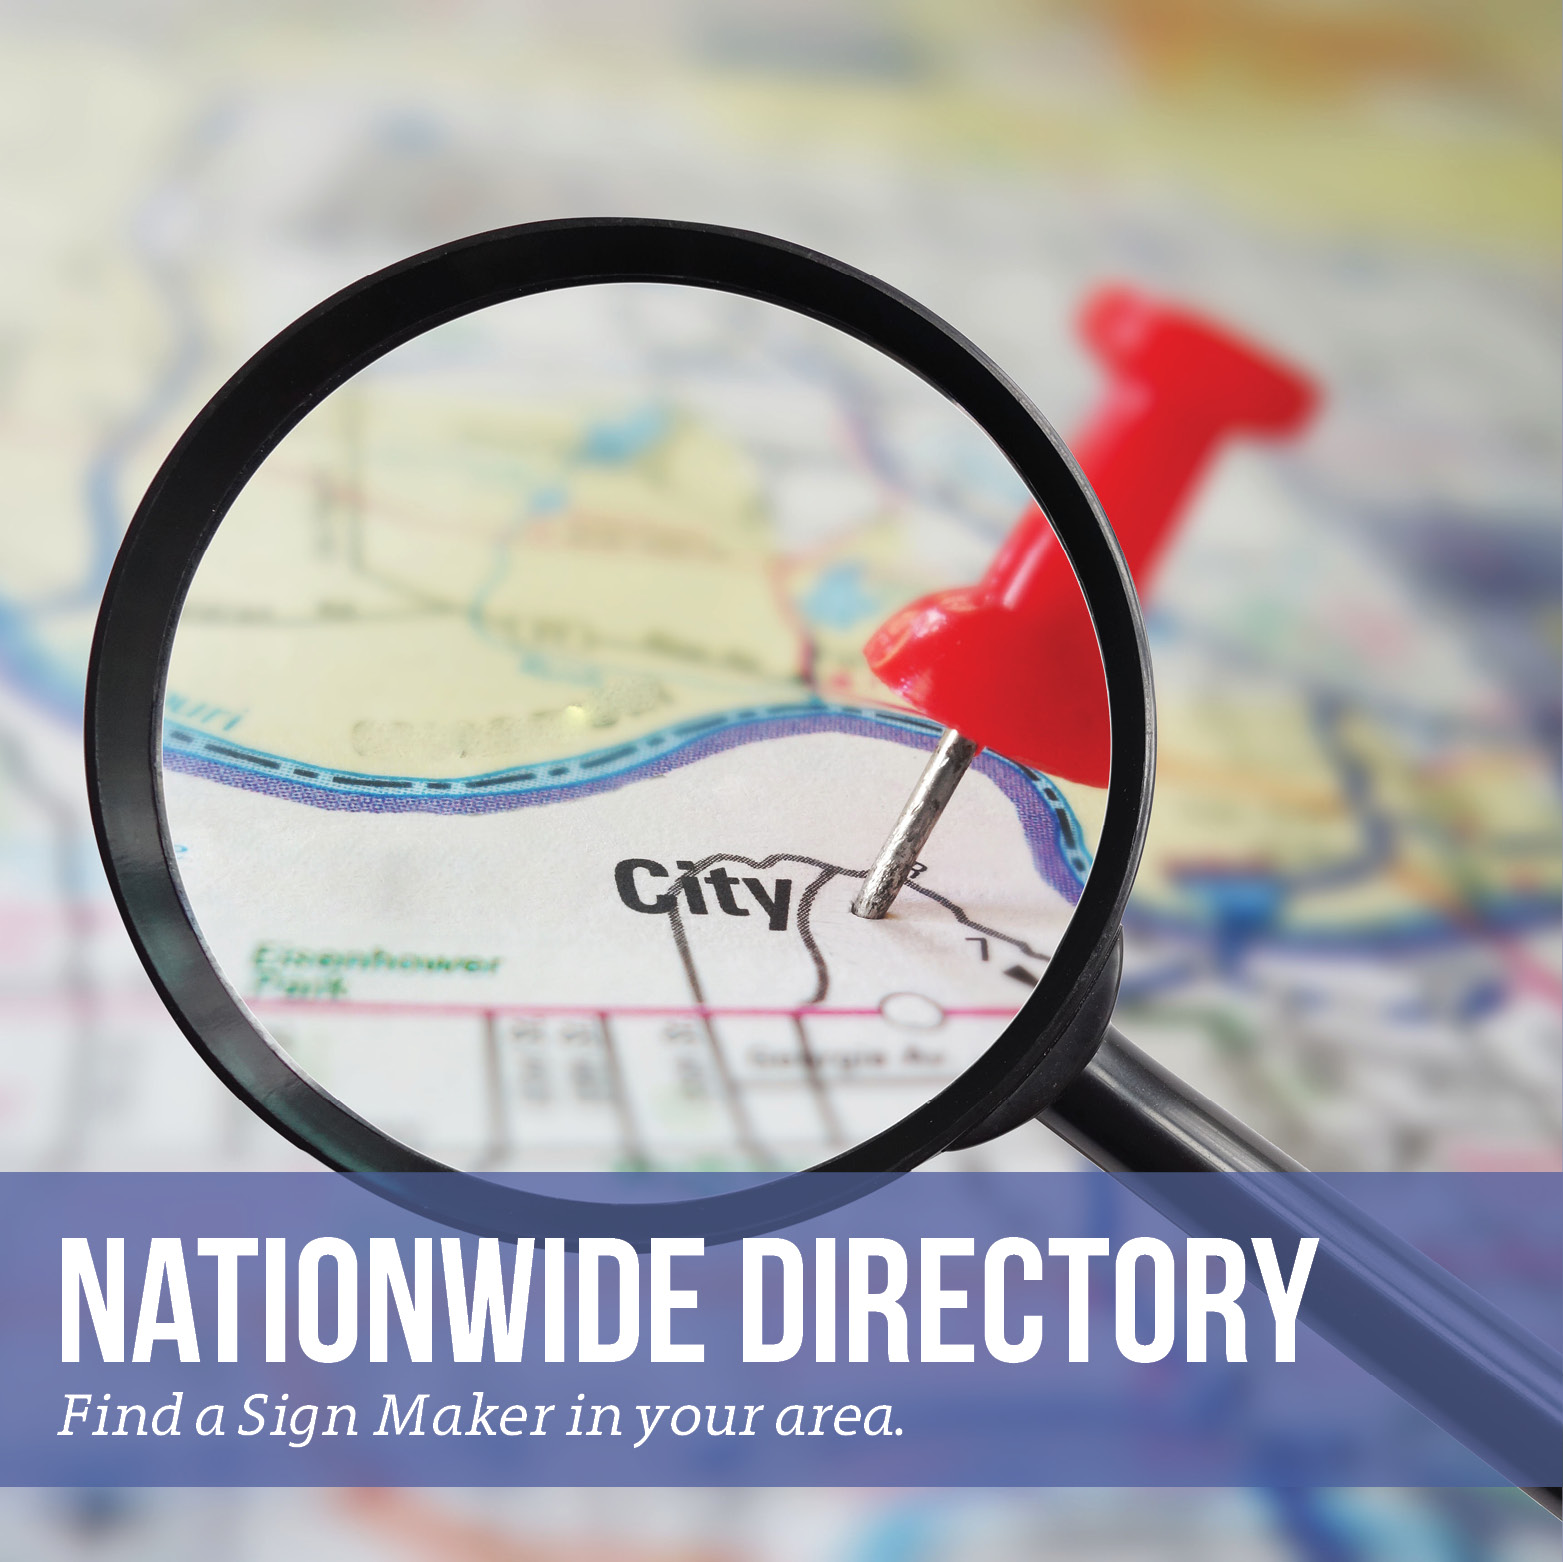 Nationwide Directory